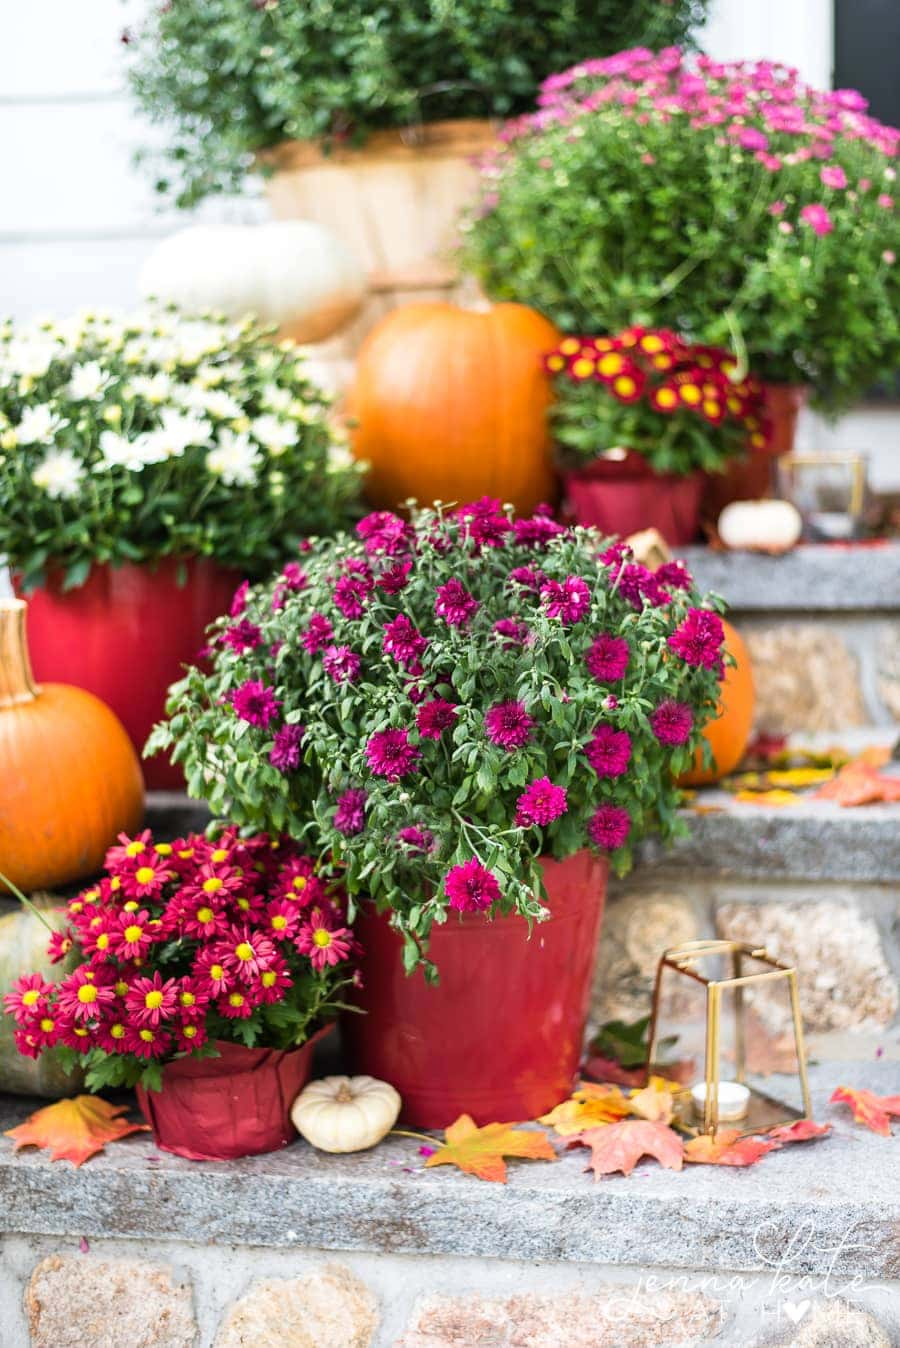 Fall front porch decorating ideas that are simple and inexpensive